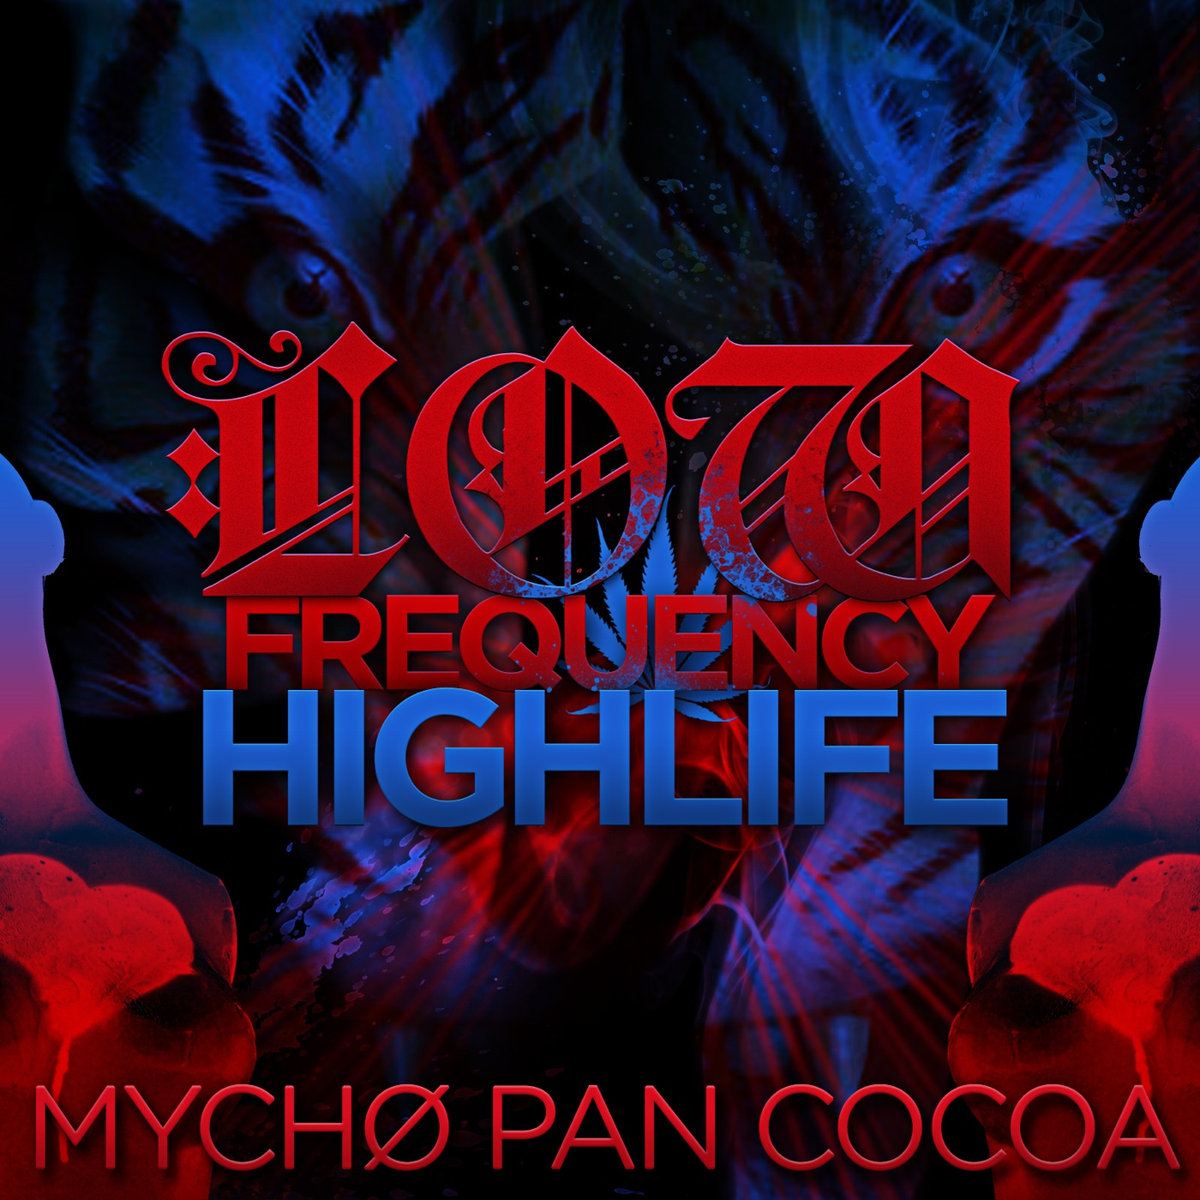 Mycho Pan Cocoa - Give Me A Sine (The Faun Remix) @ 'Low Frequency High Life' album (electronic, dubstep)